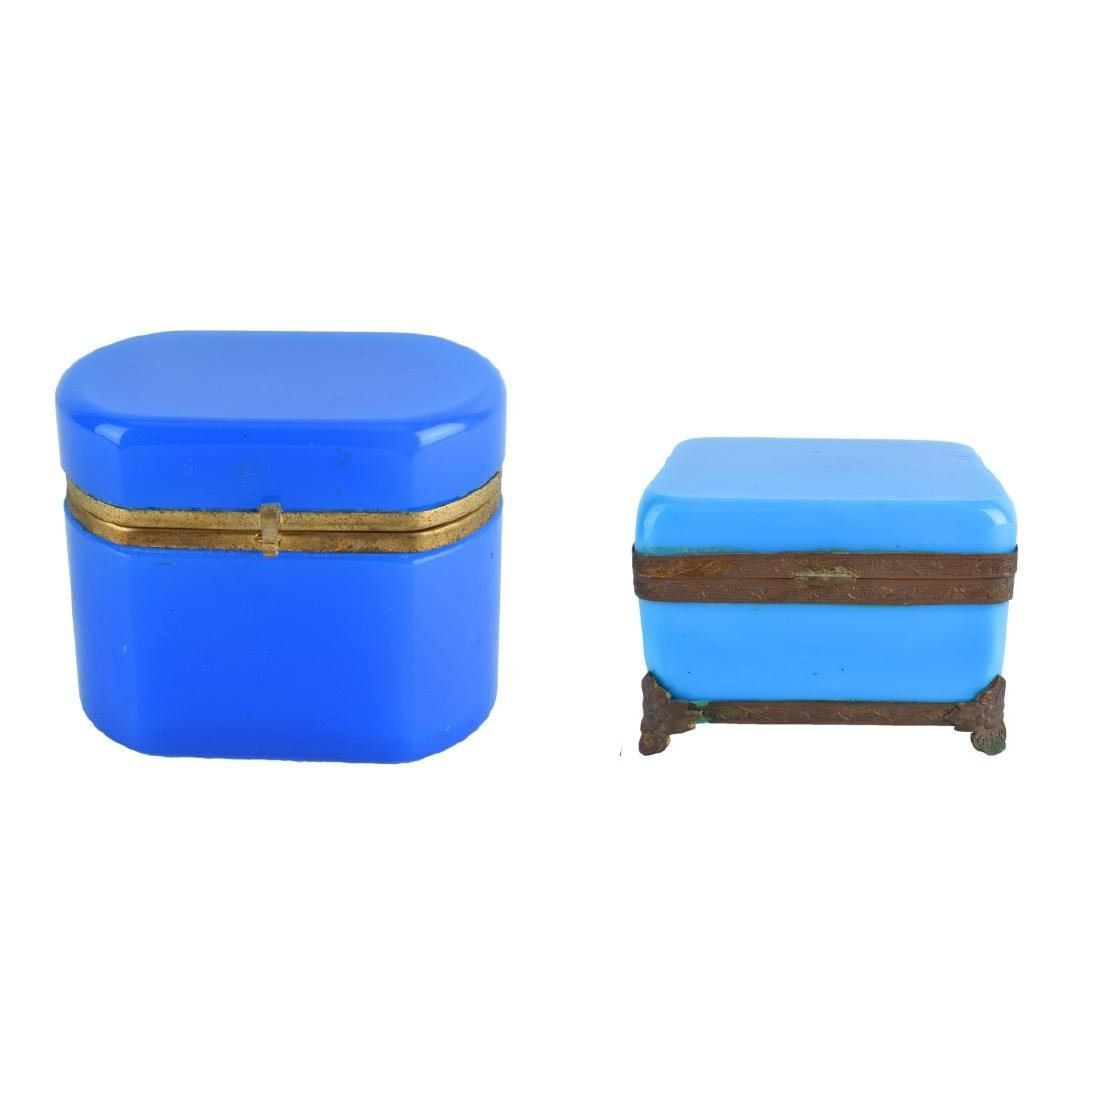 Two (2) Opaline Glass Boxes